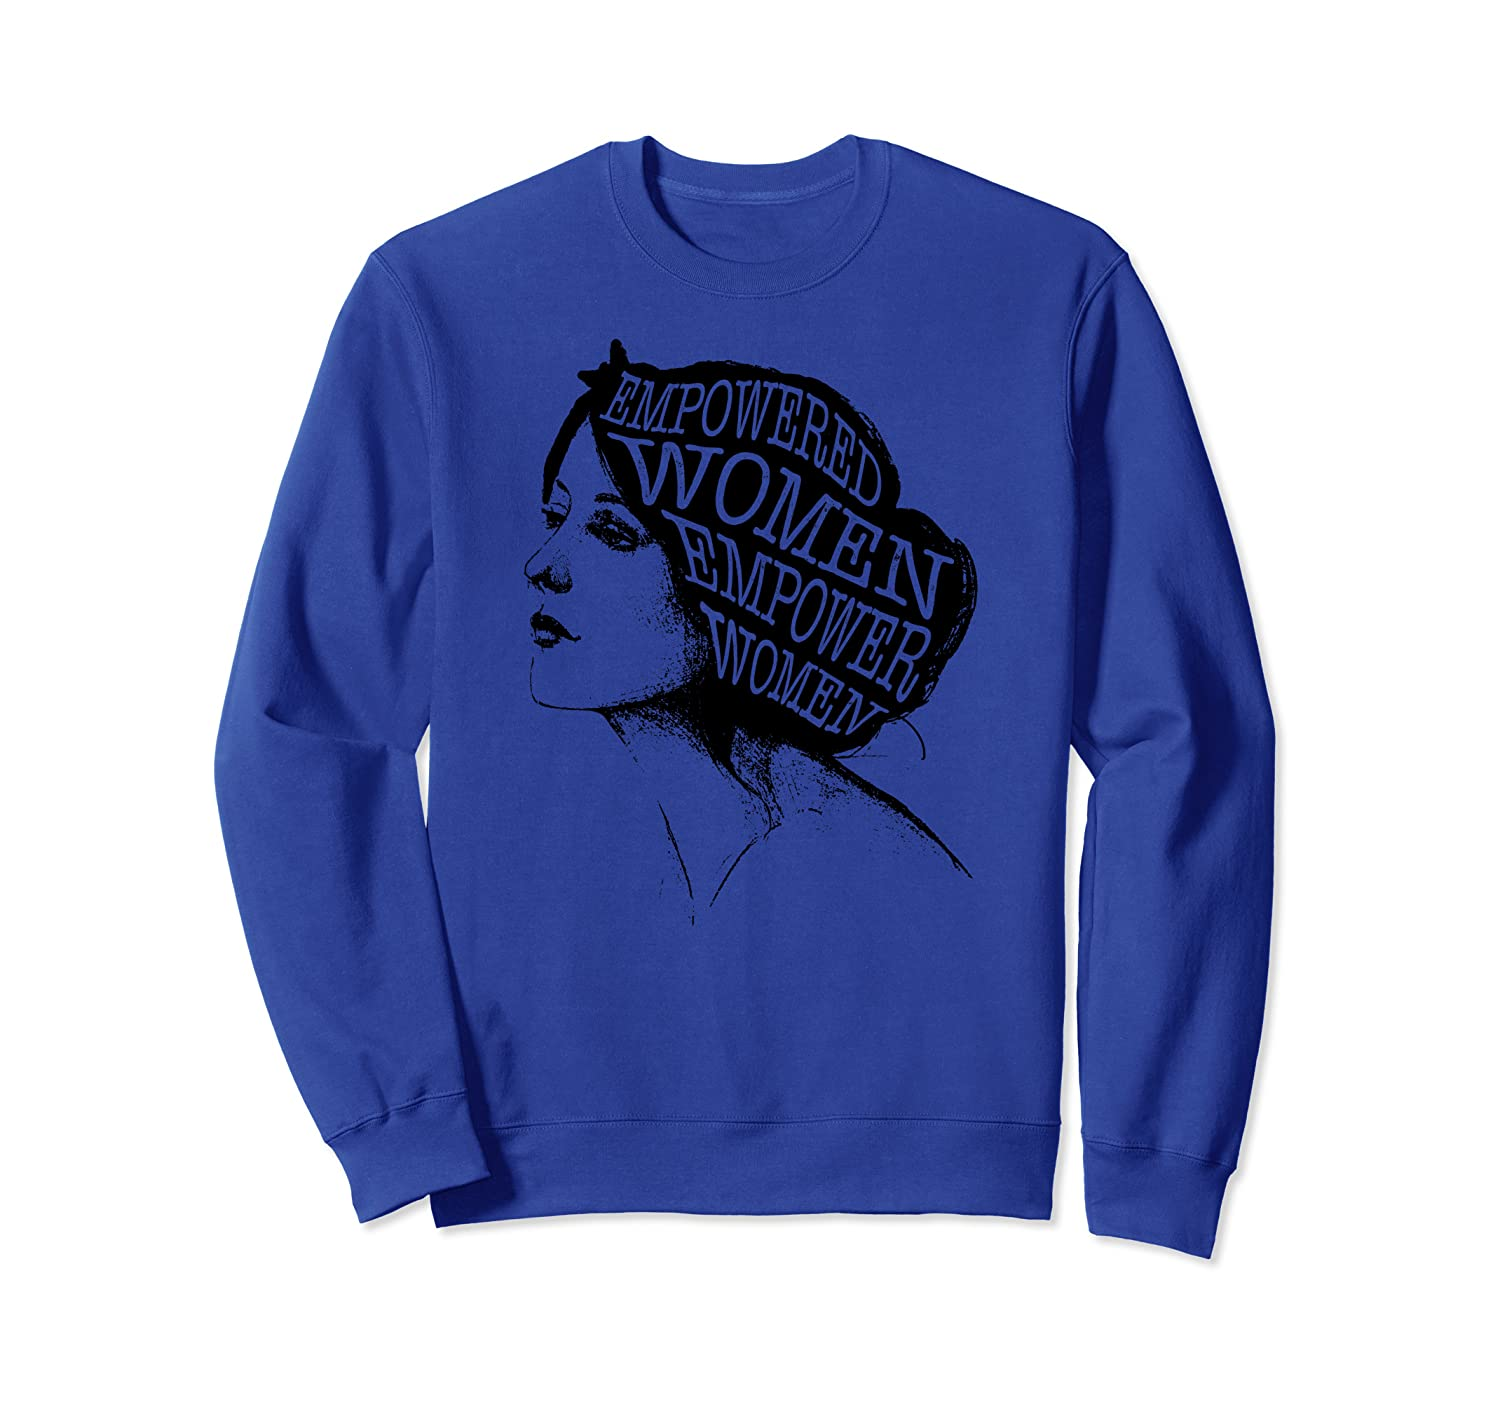 """Empowered Women"" Feminism Womens Rights Feminist Sweatshirt Unisex Tshirt"